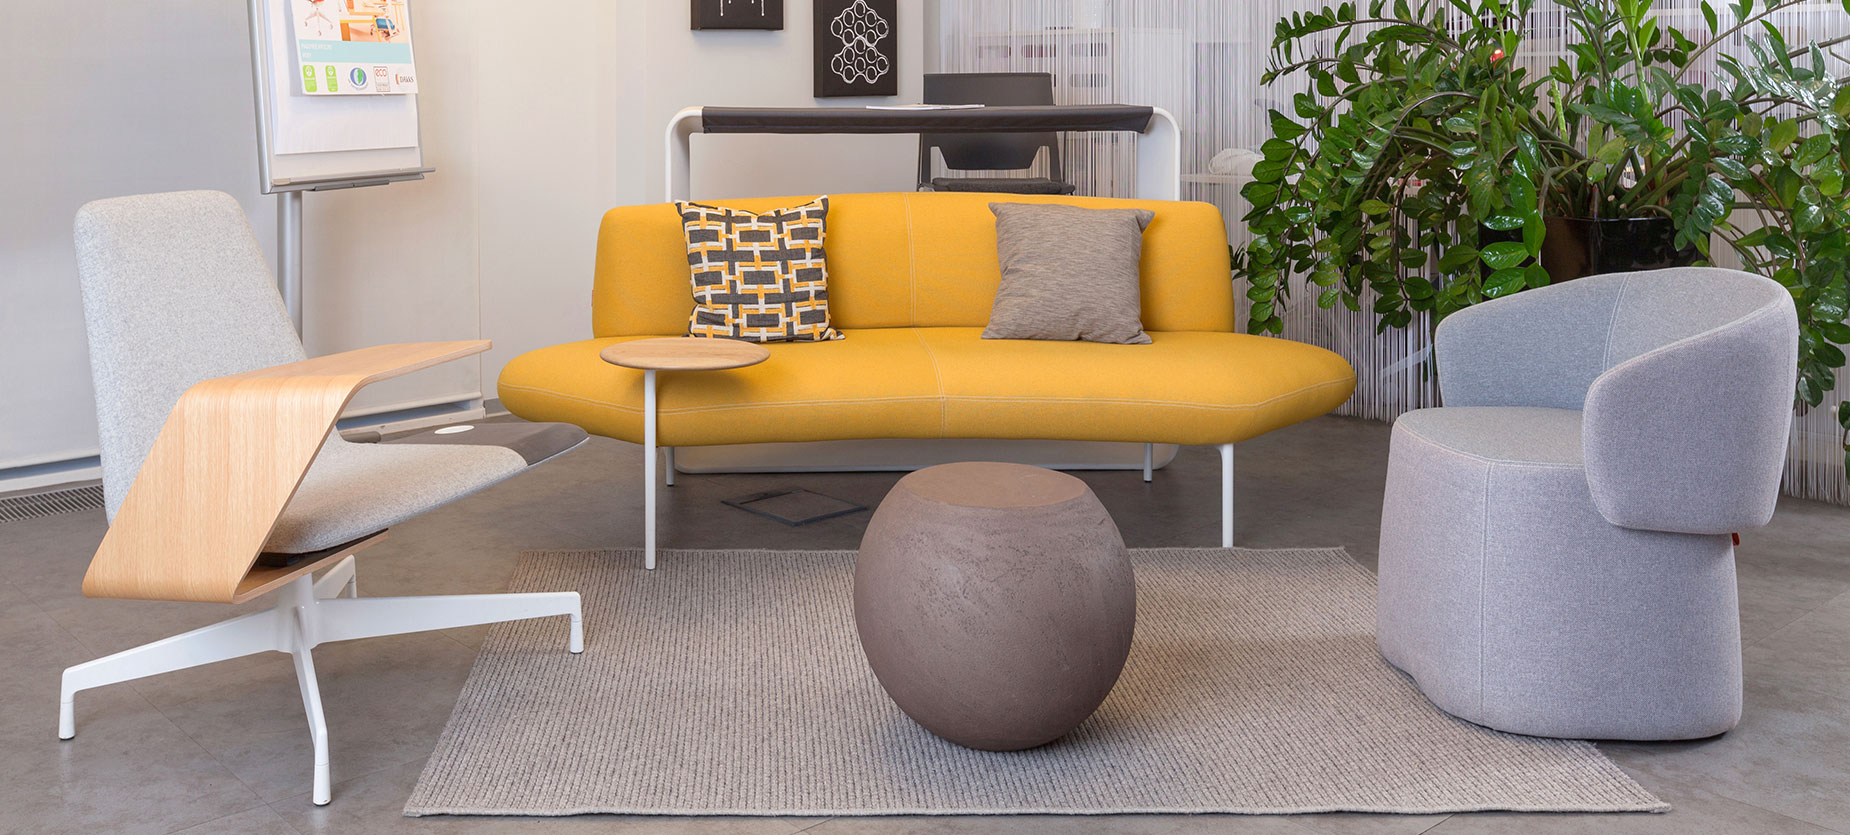 A cozy lounge area is furnished with an inviting combination of a Chick pouf, Feather sofa, Harbor Work Lounge, and Cappellini's Bong coffee table. 